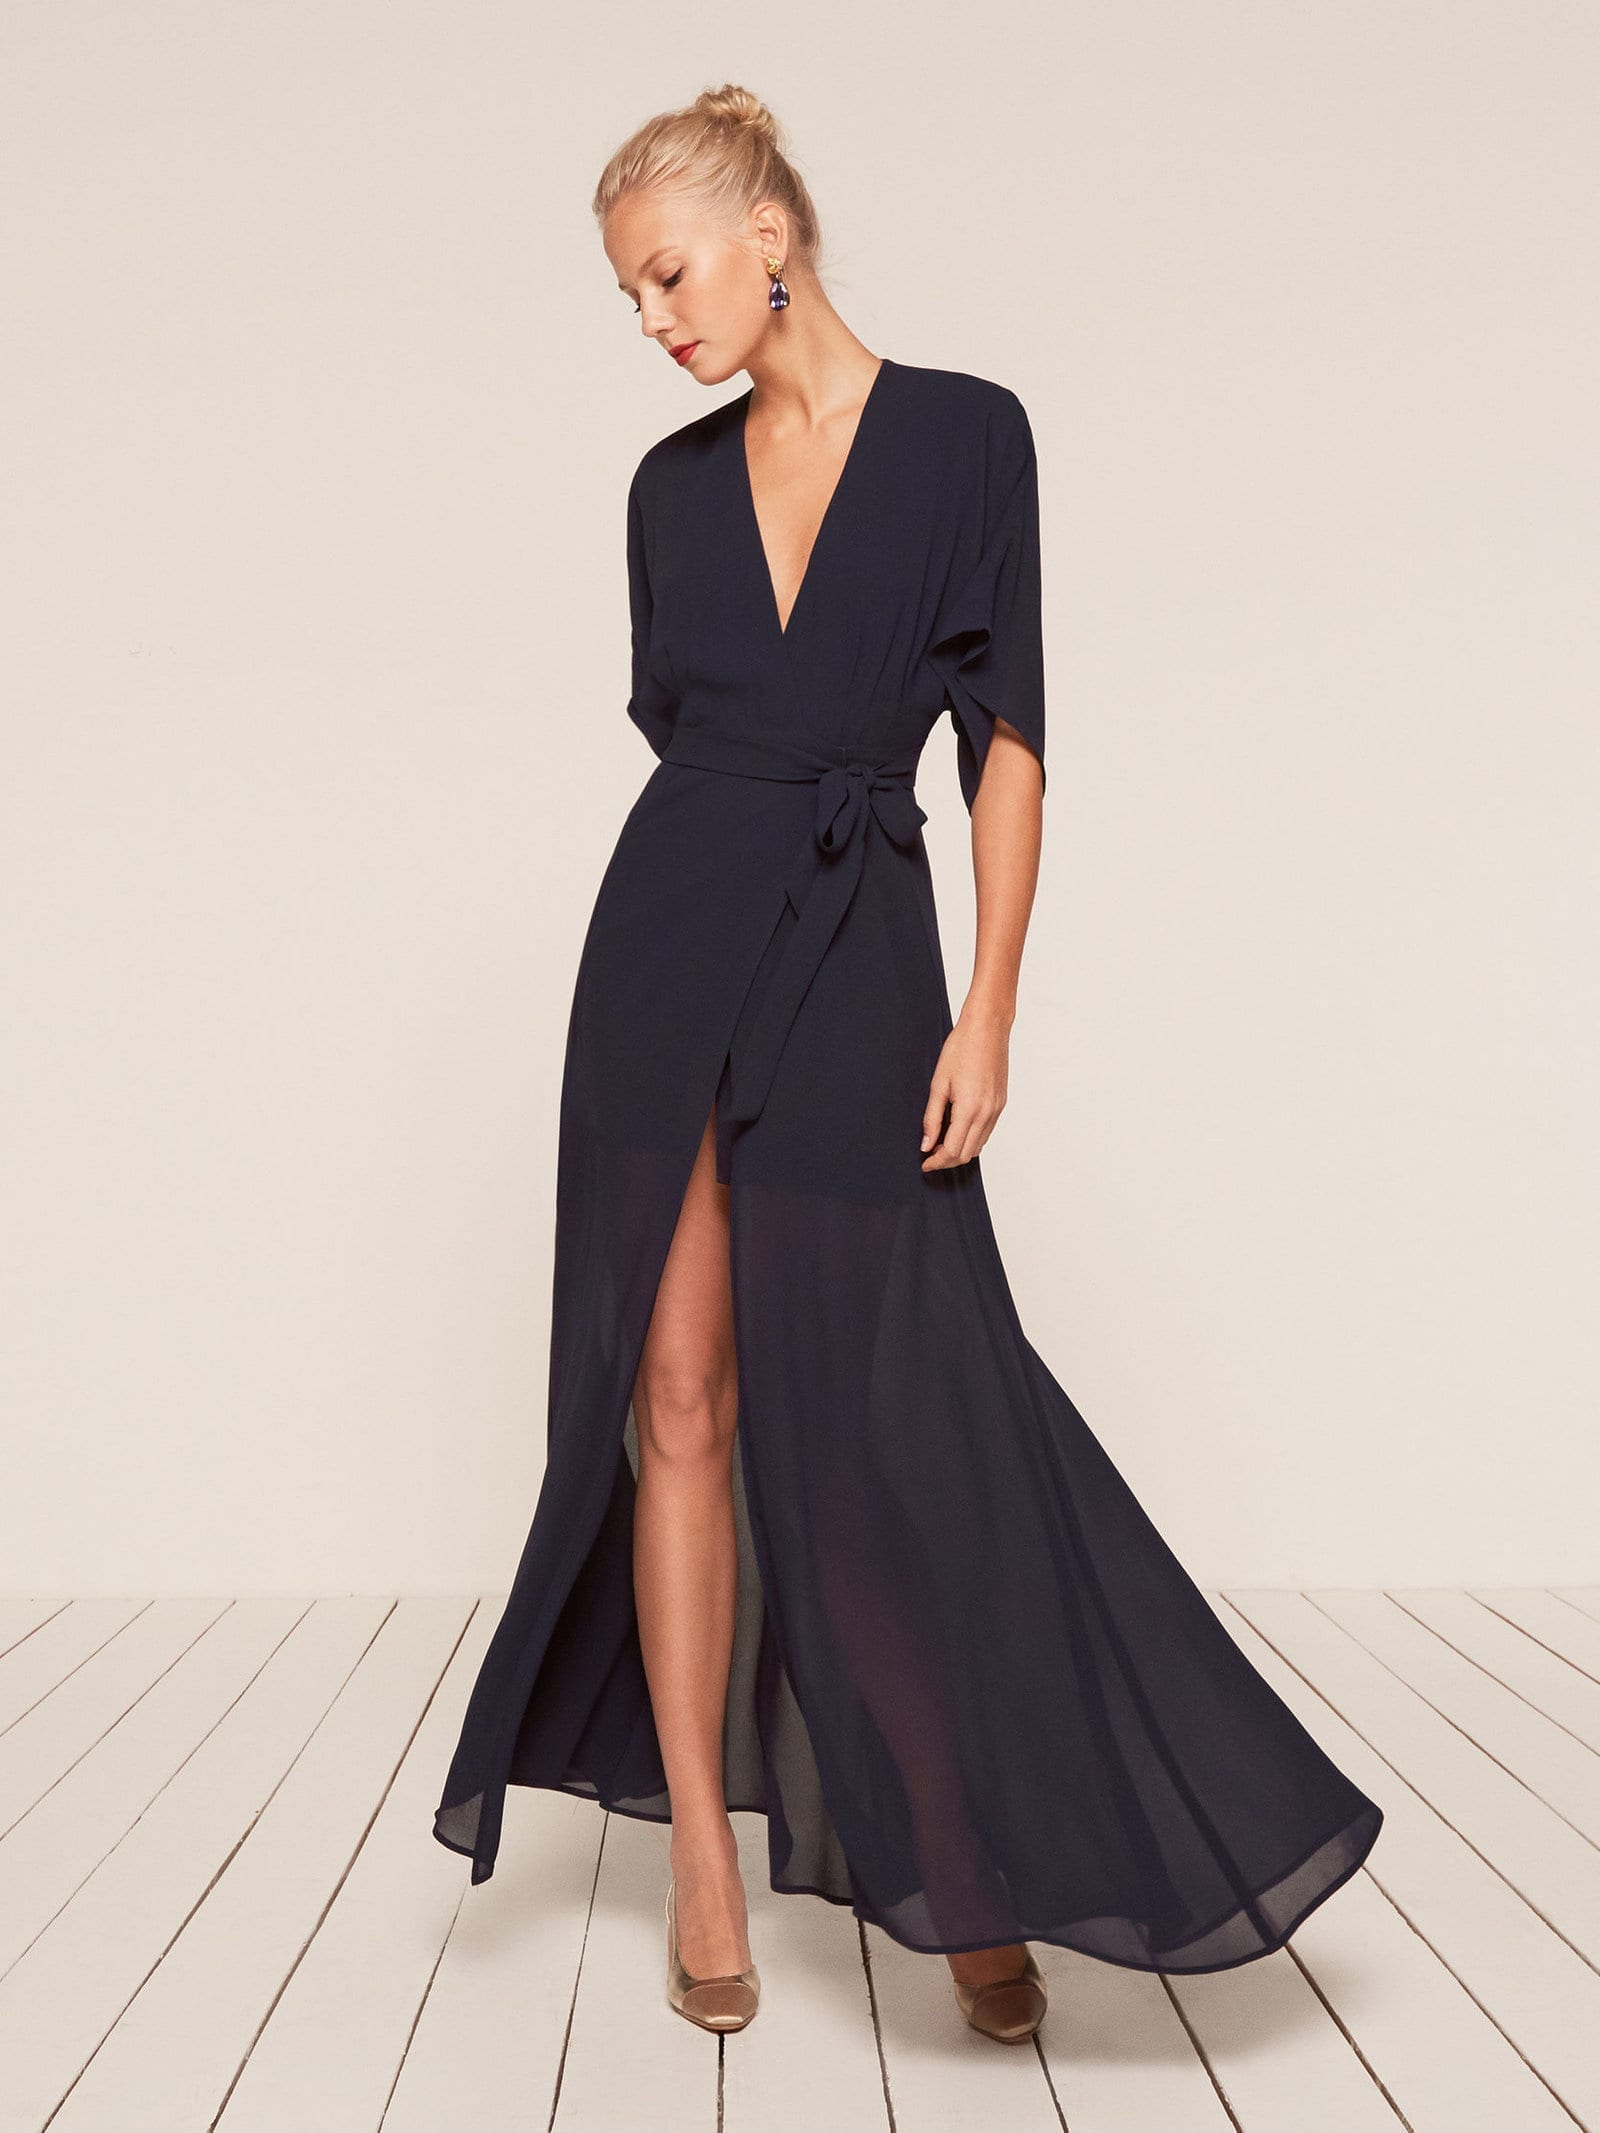 THEREFORMATION Winslow Navy Dress